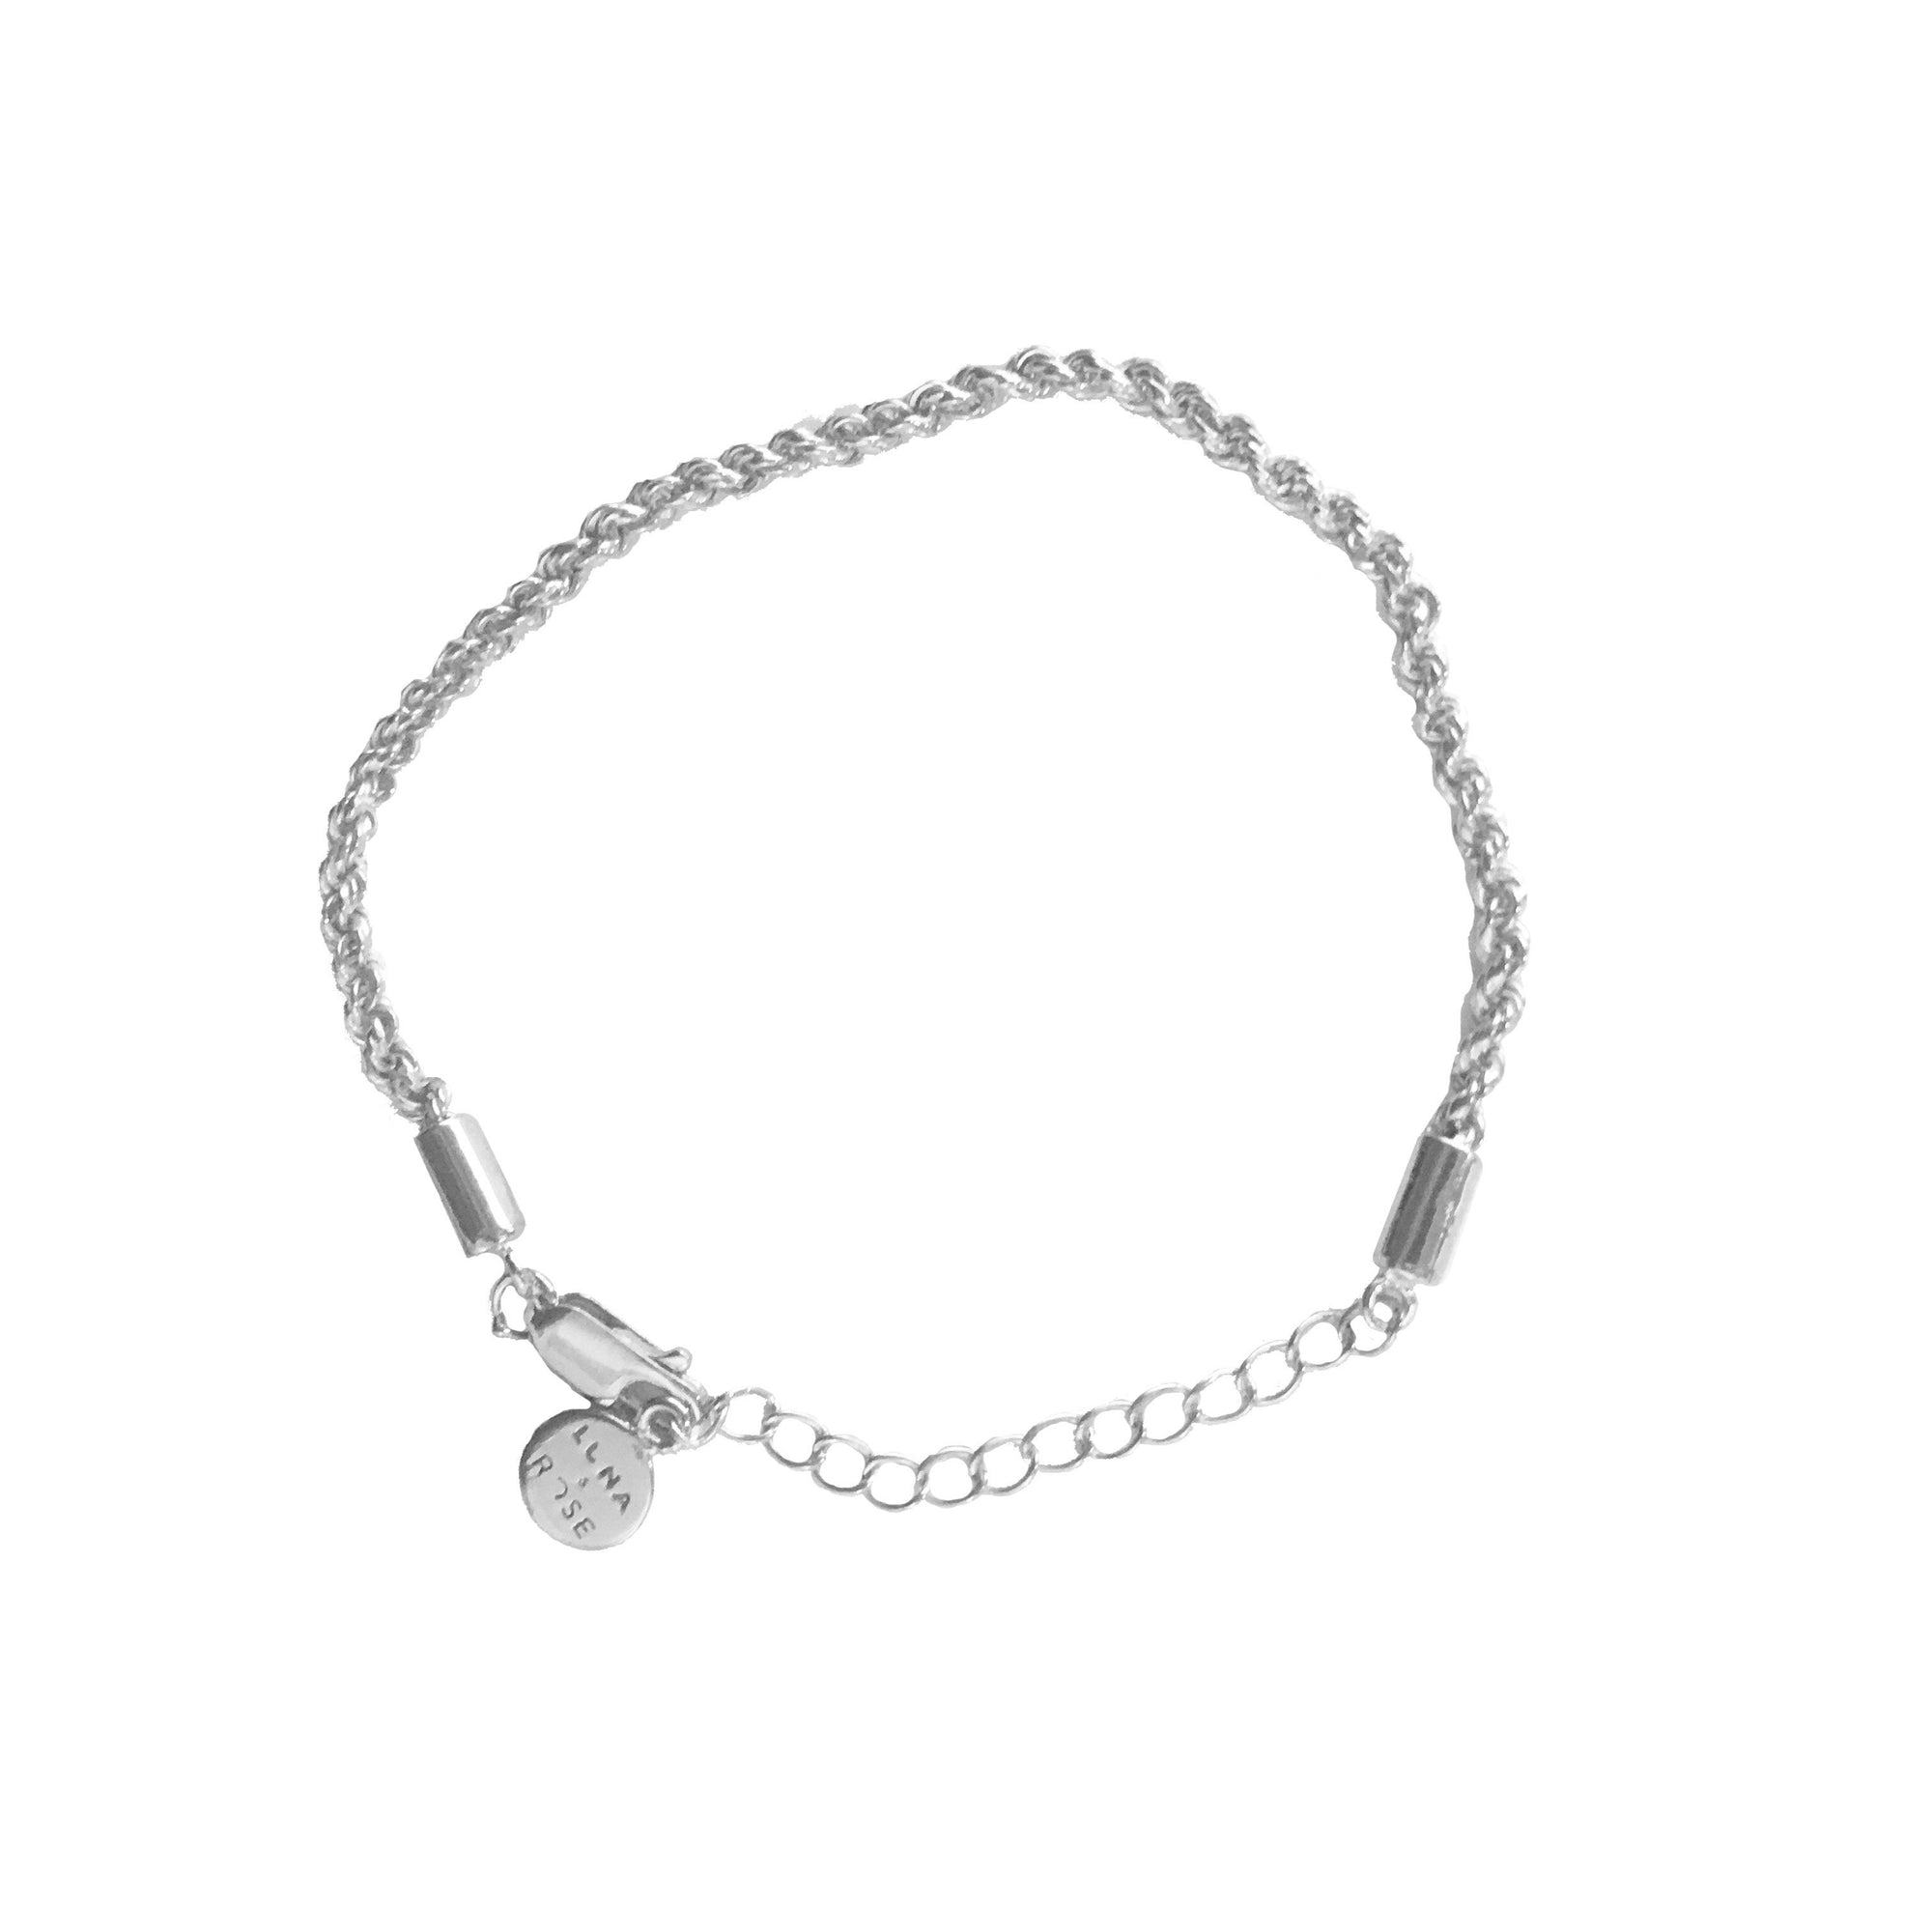 Luna & Rose Recycled Silver Jewellery Bracelet